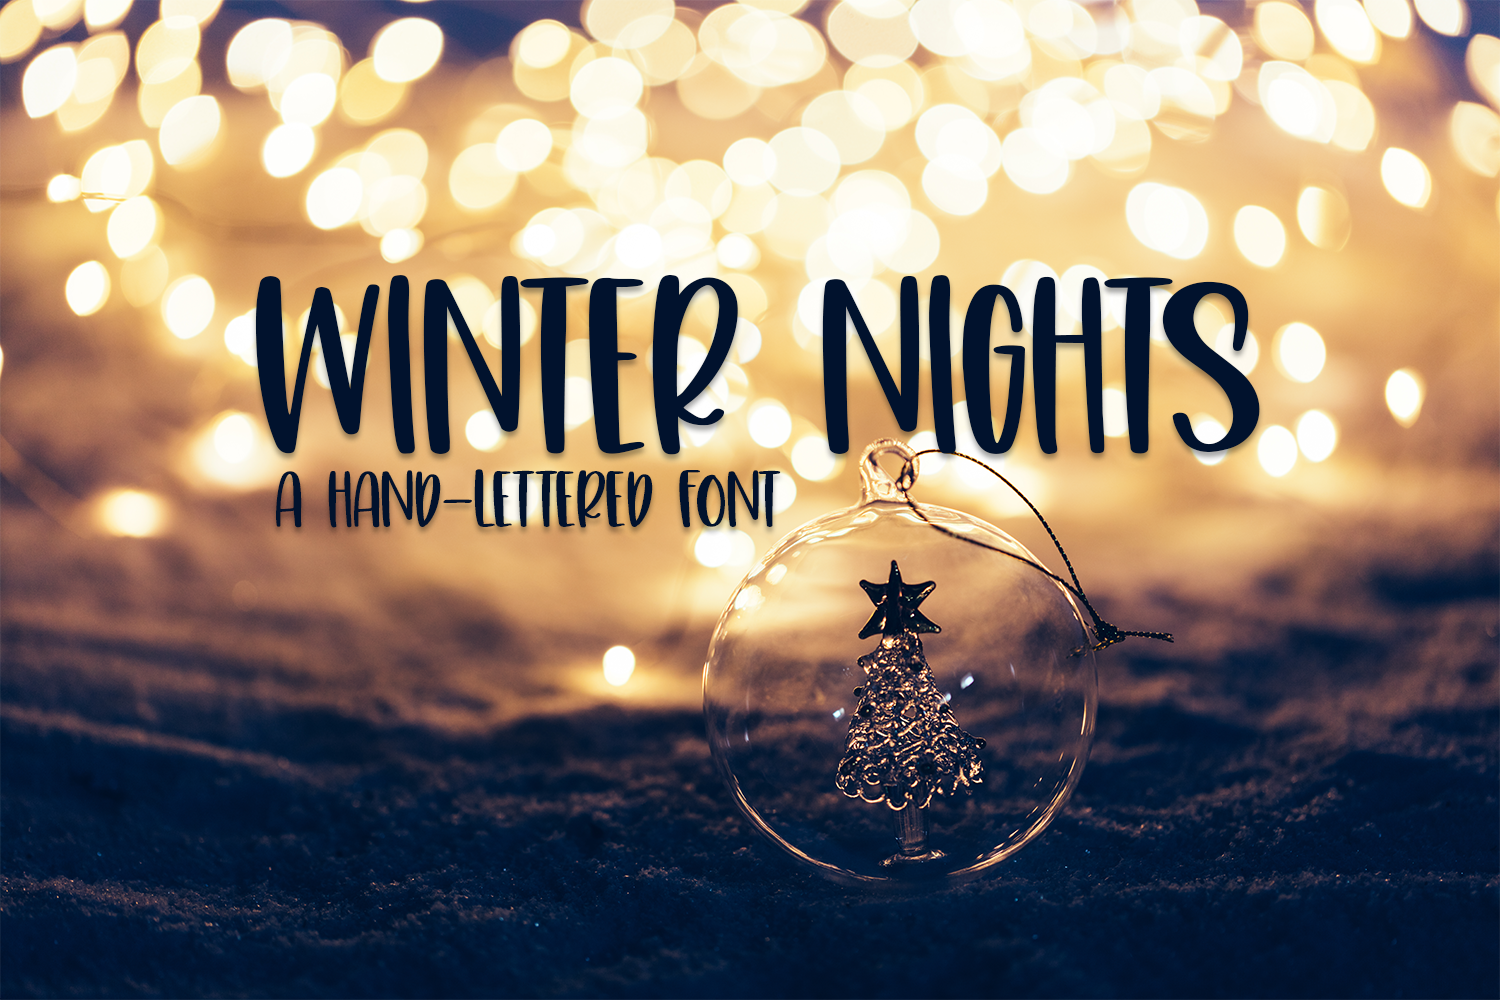 Winter Nights - A Cute Hand-Lettered Font example image 1